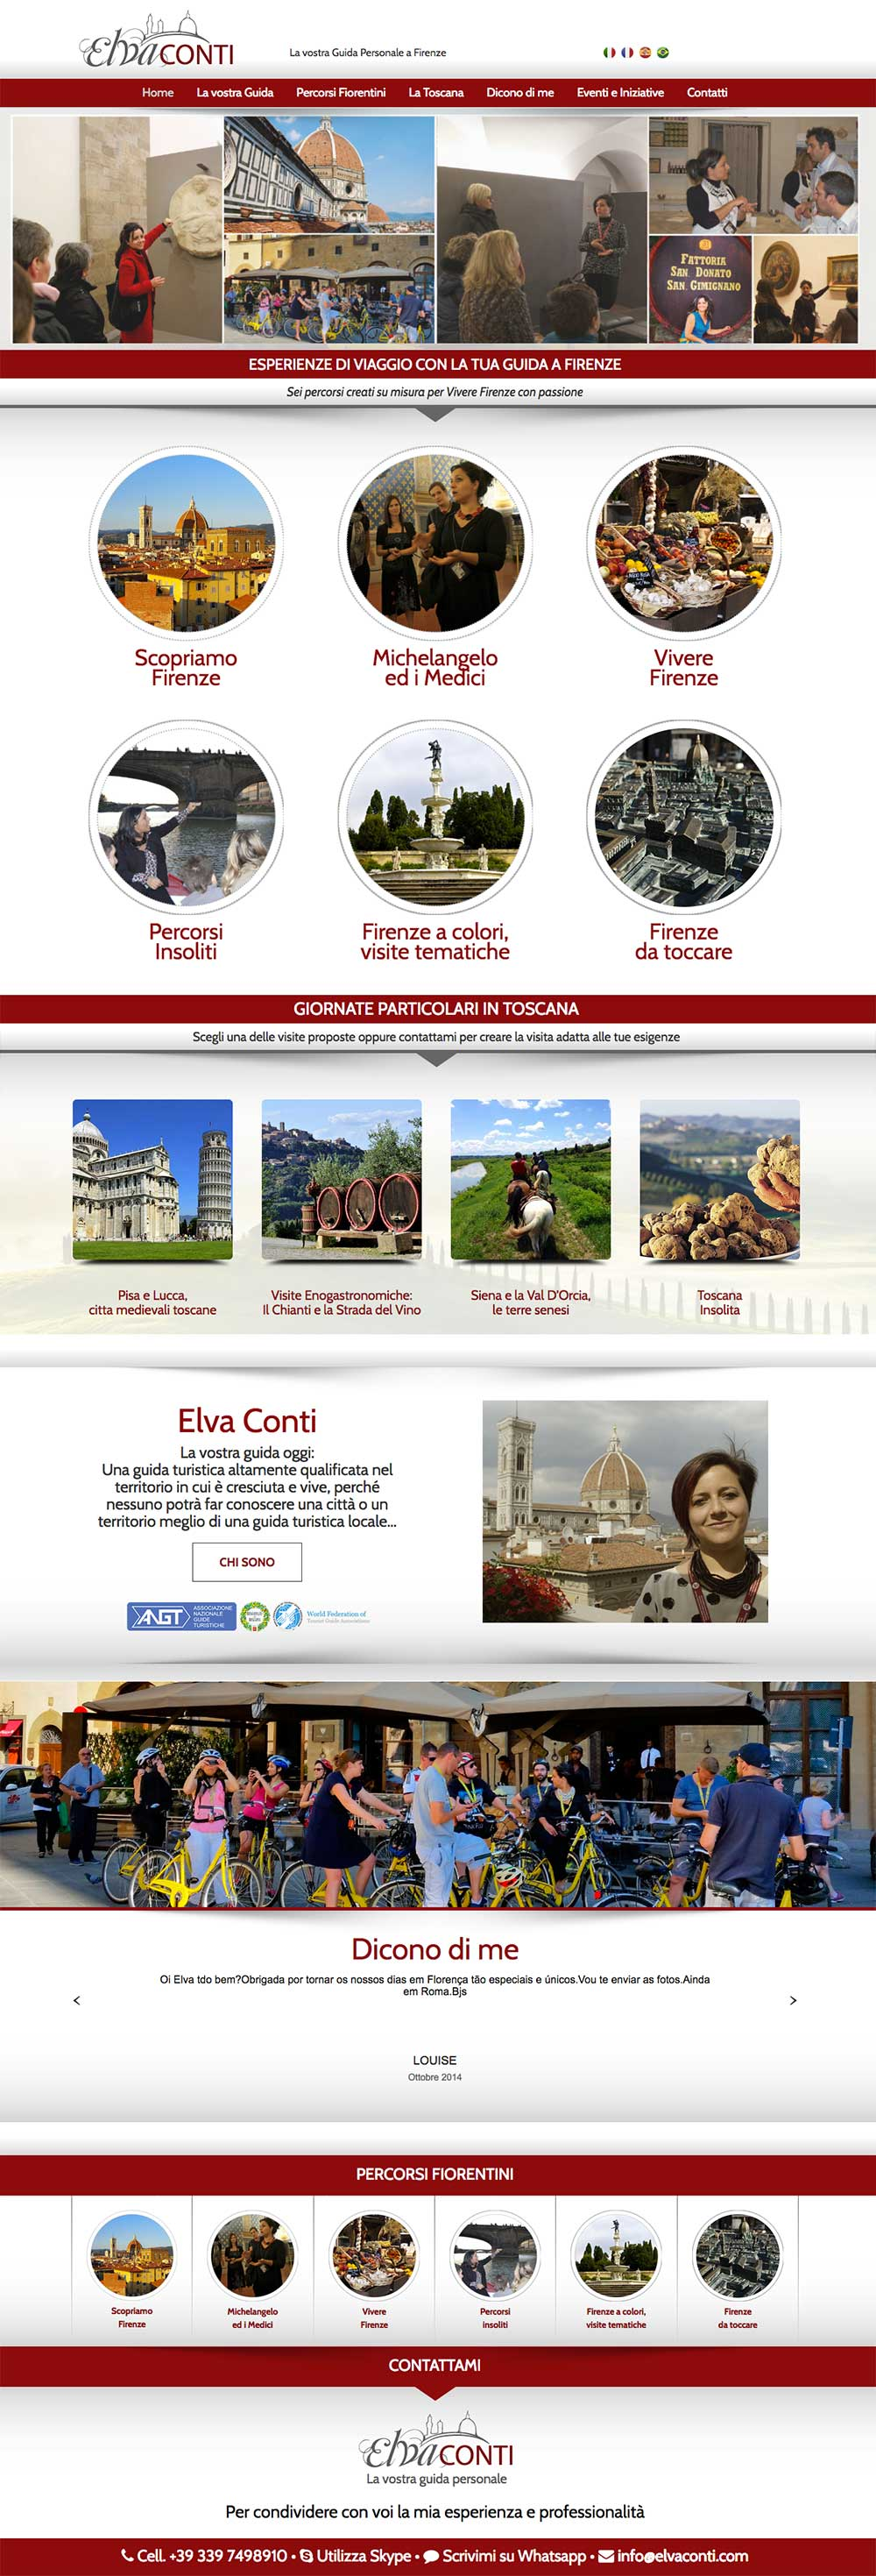 web marketing firenze